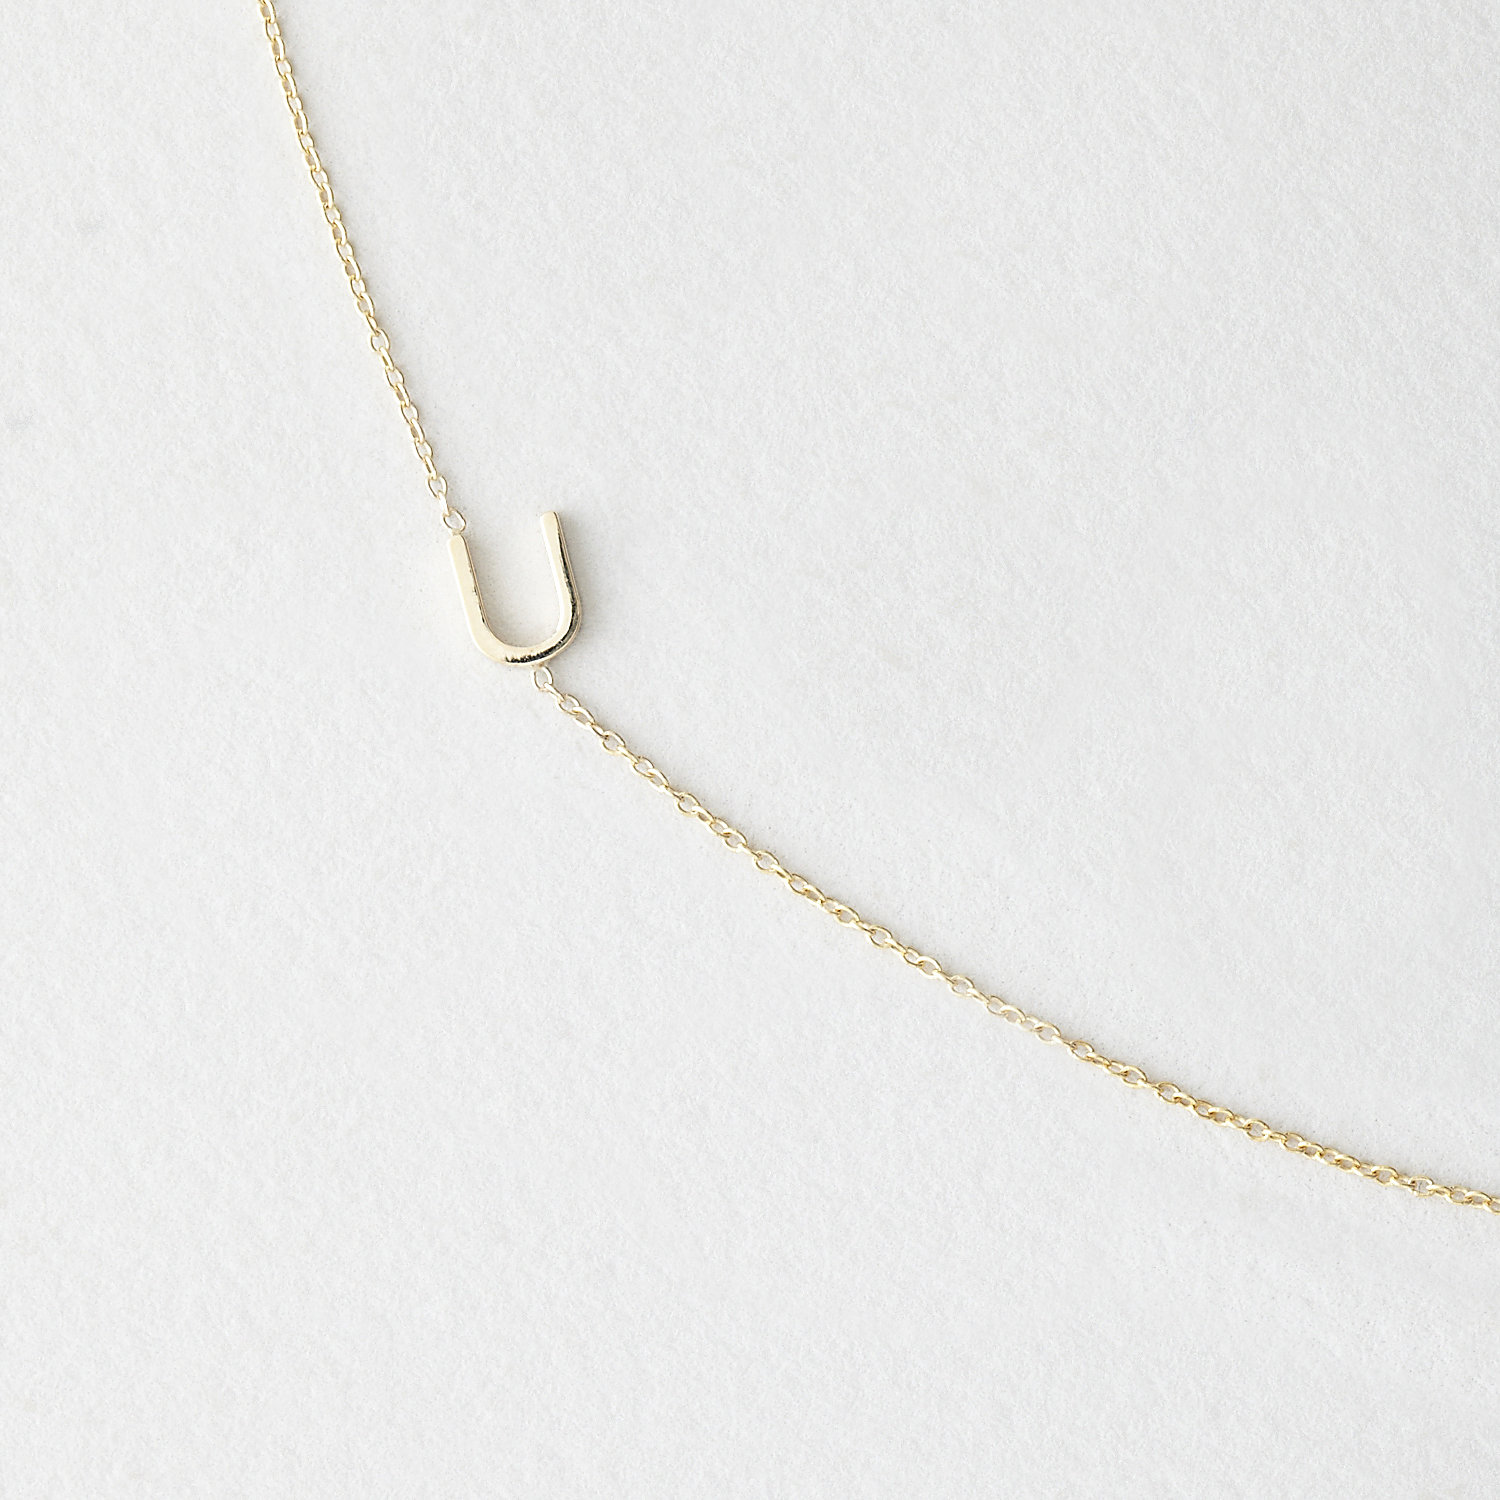 ASYMMETRICAL MINI LETTER NECKLACE - U